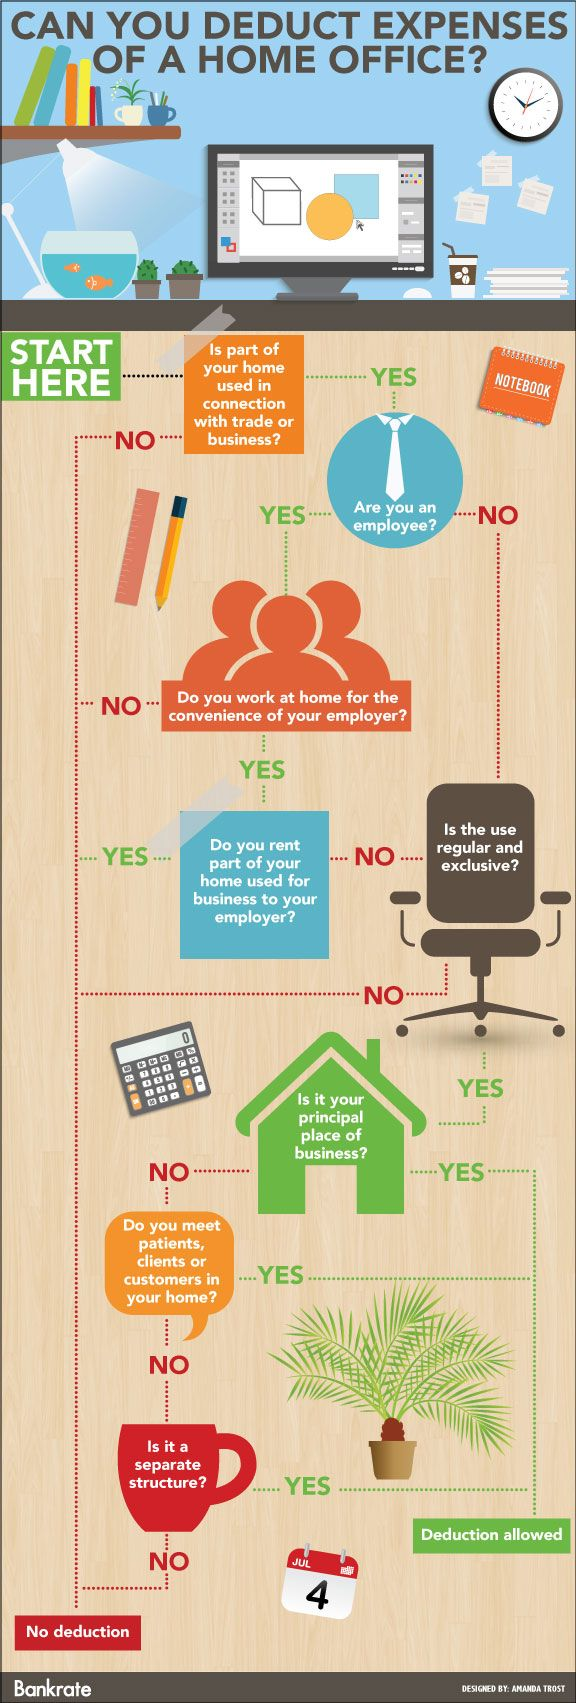 Adding a Home Office Has Advantages Home office expenses